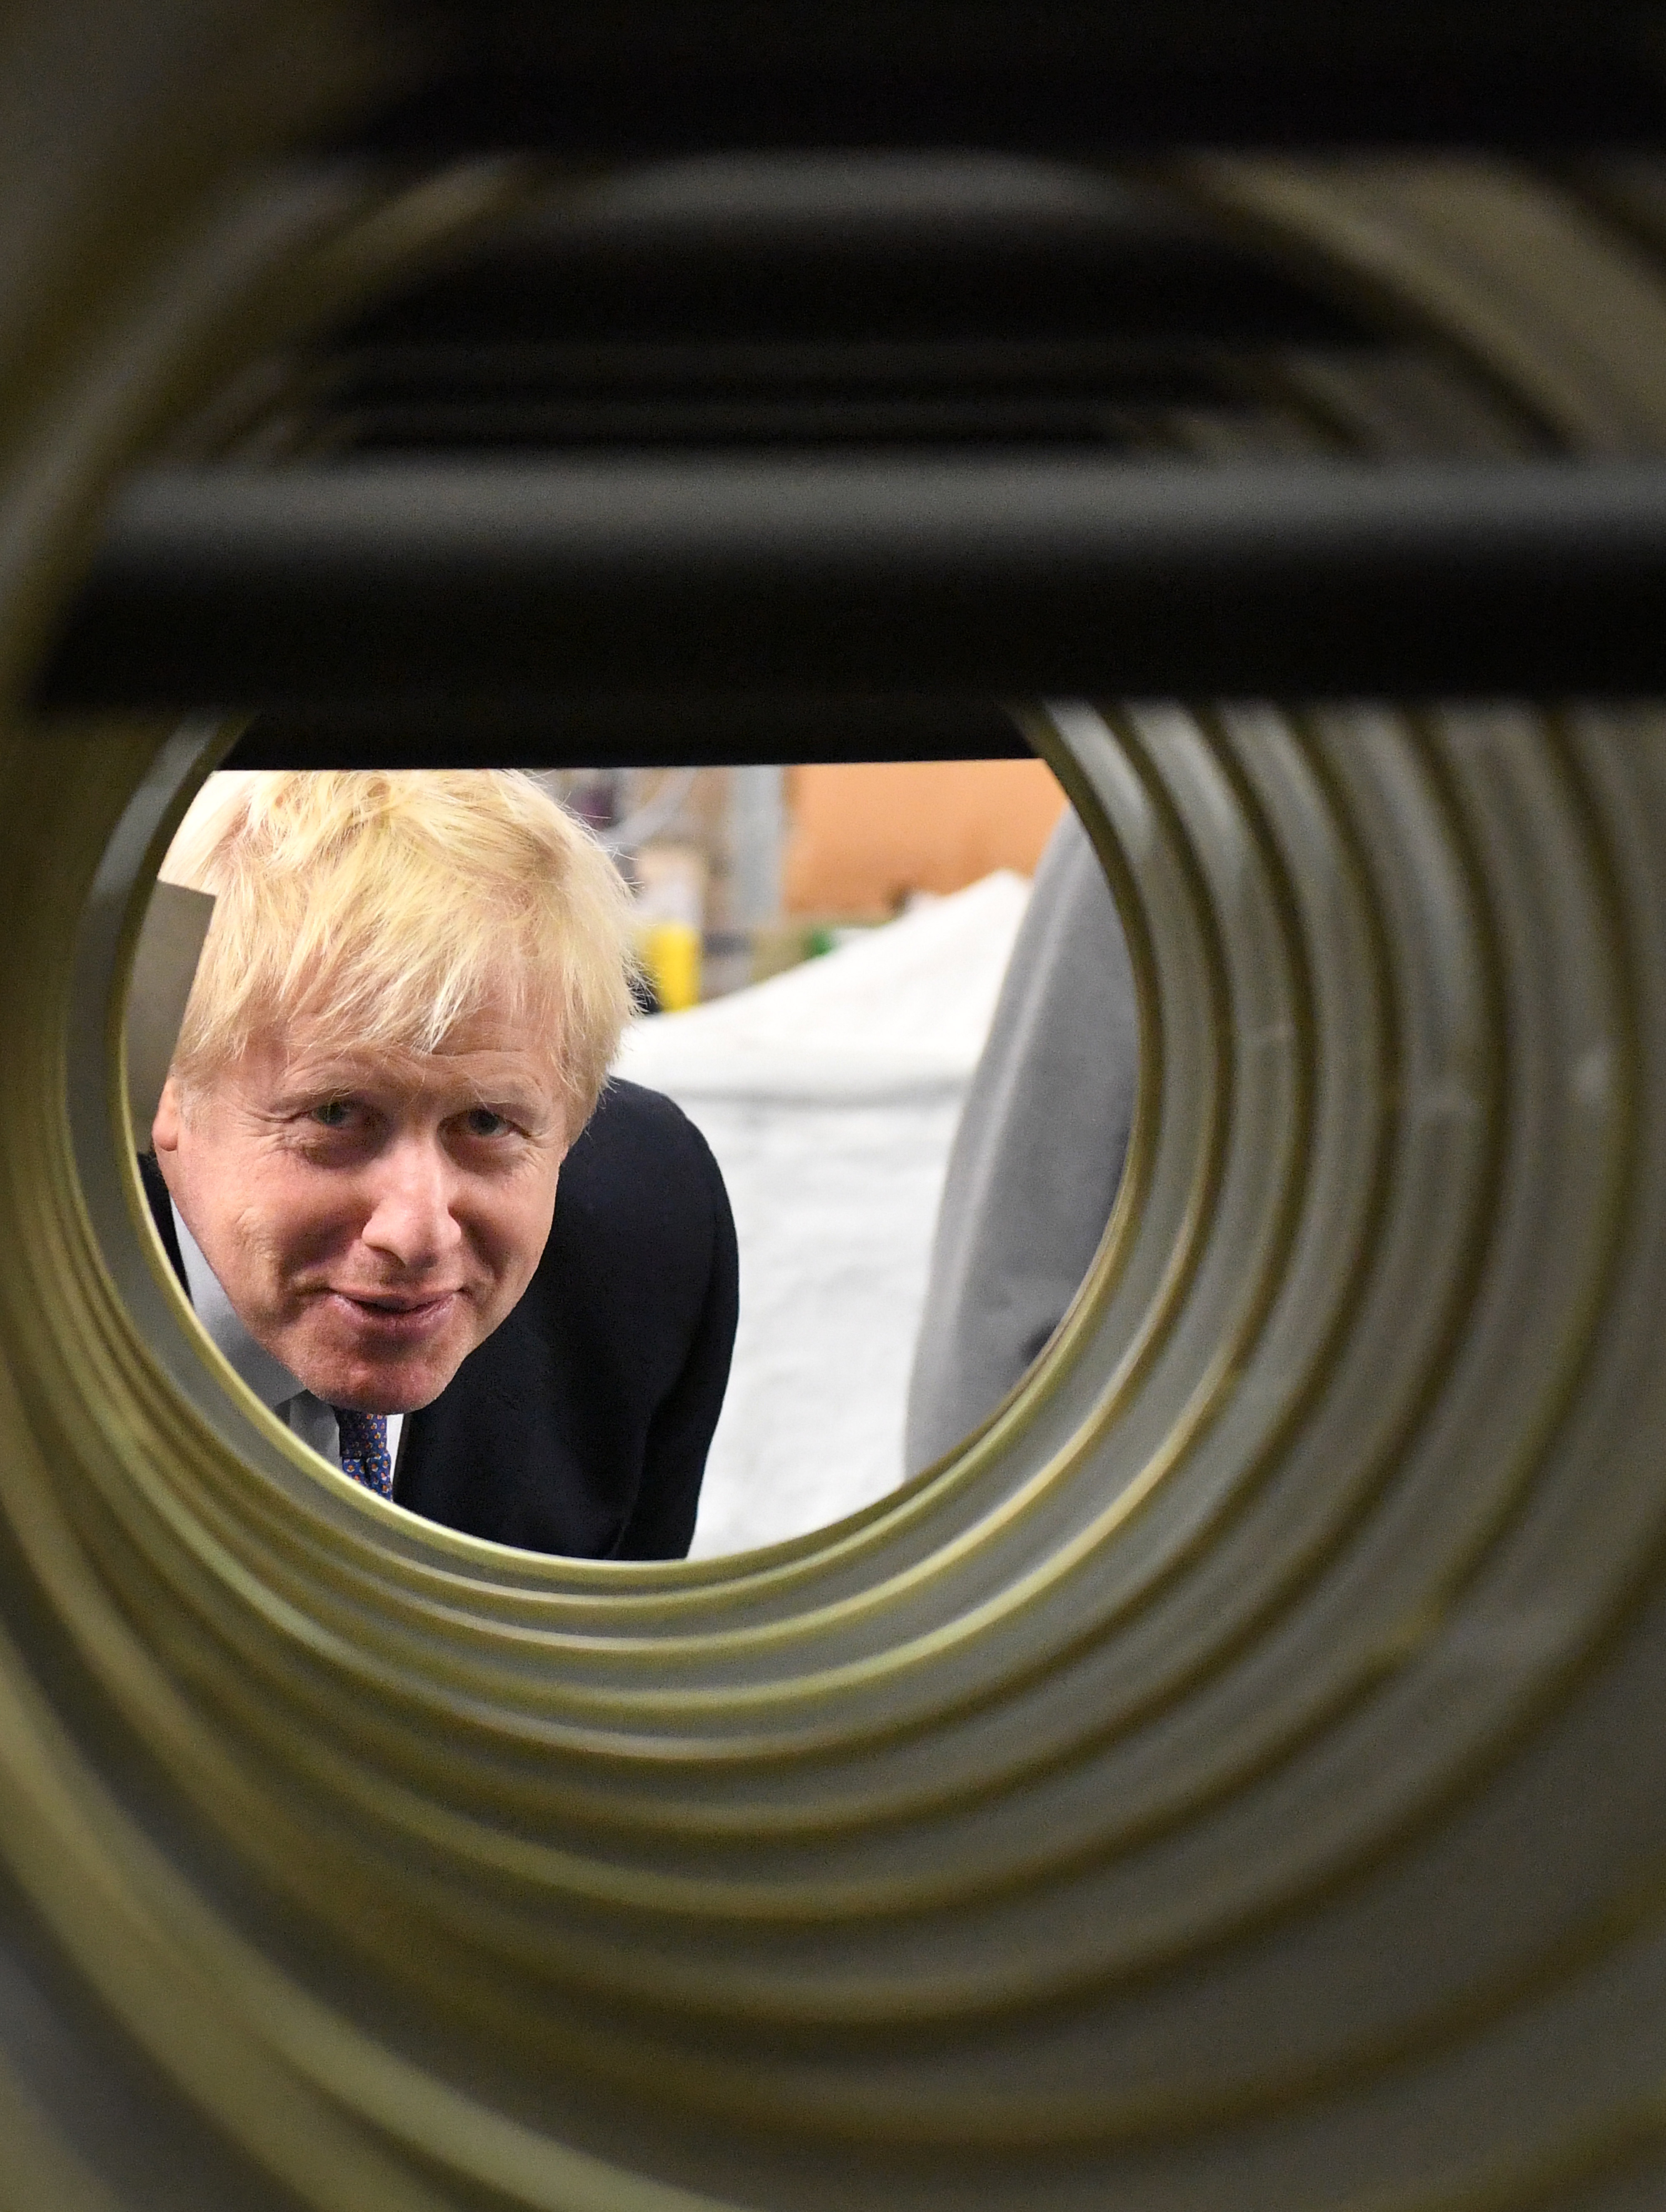 Prime Minister Boris Johnson during a visit to washing machine manufacturer Ebac in Newton Aycliffe while election campaigning in the North East, ahead of the General Election.